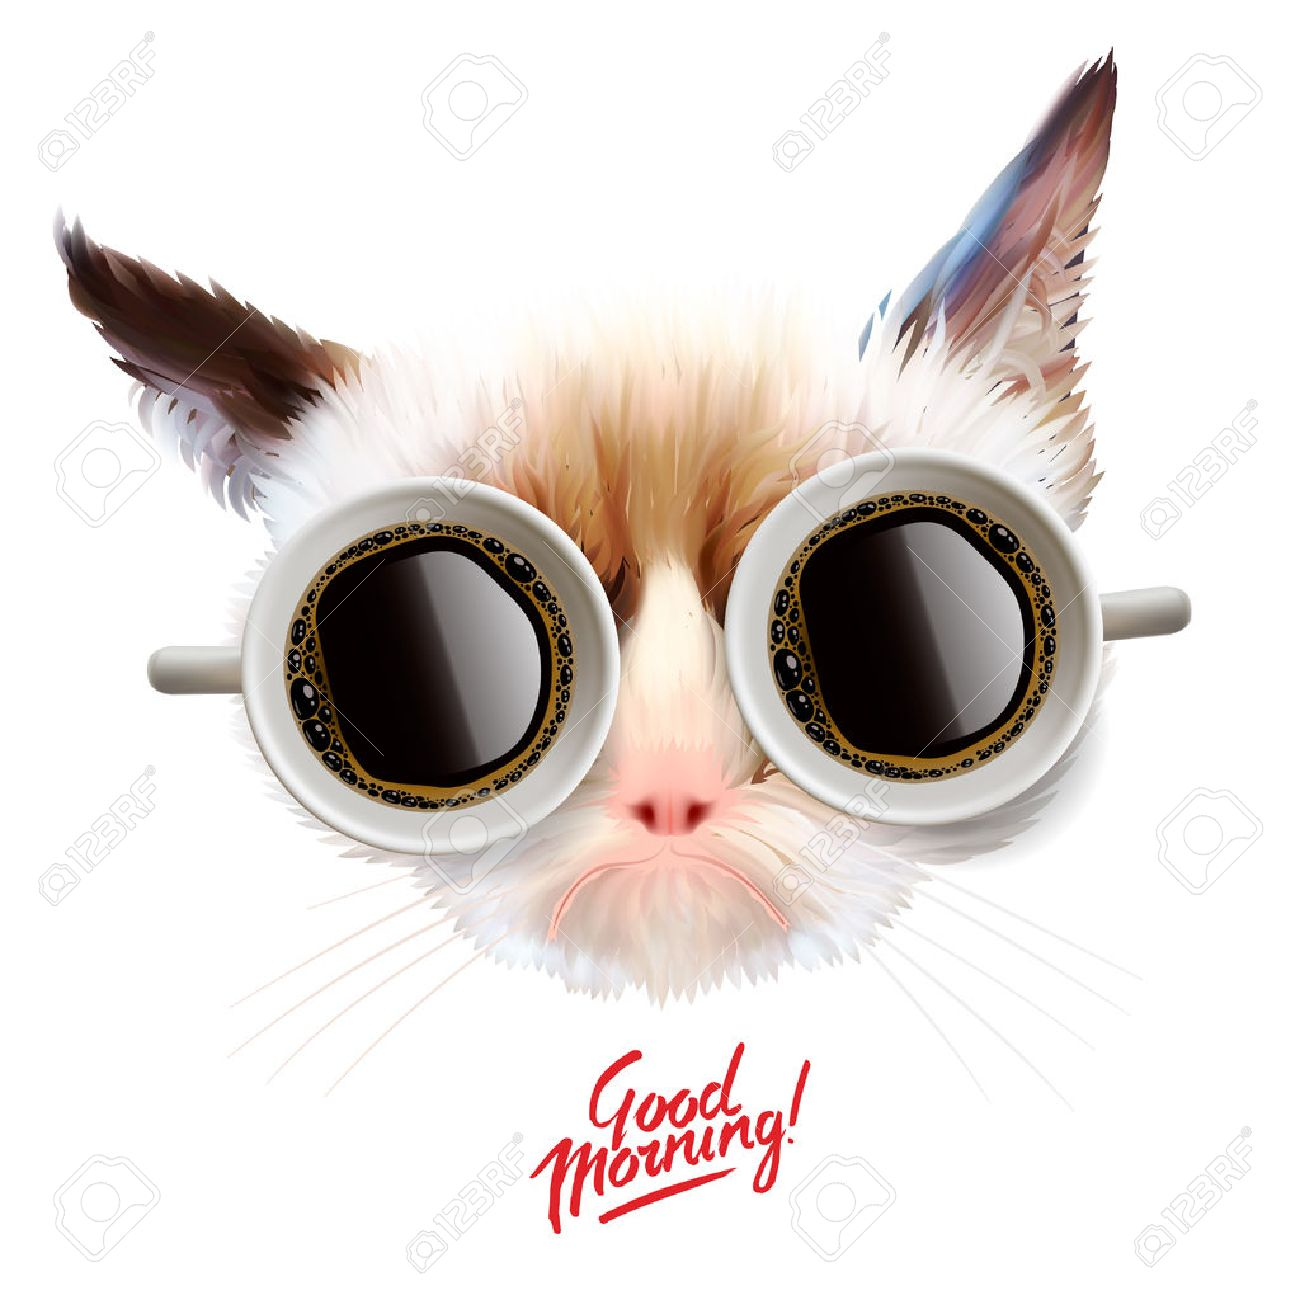 Funny cat with cups of coffee glasses, illustration. Standard-Bild - 42394442